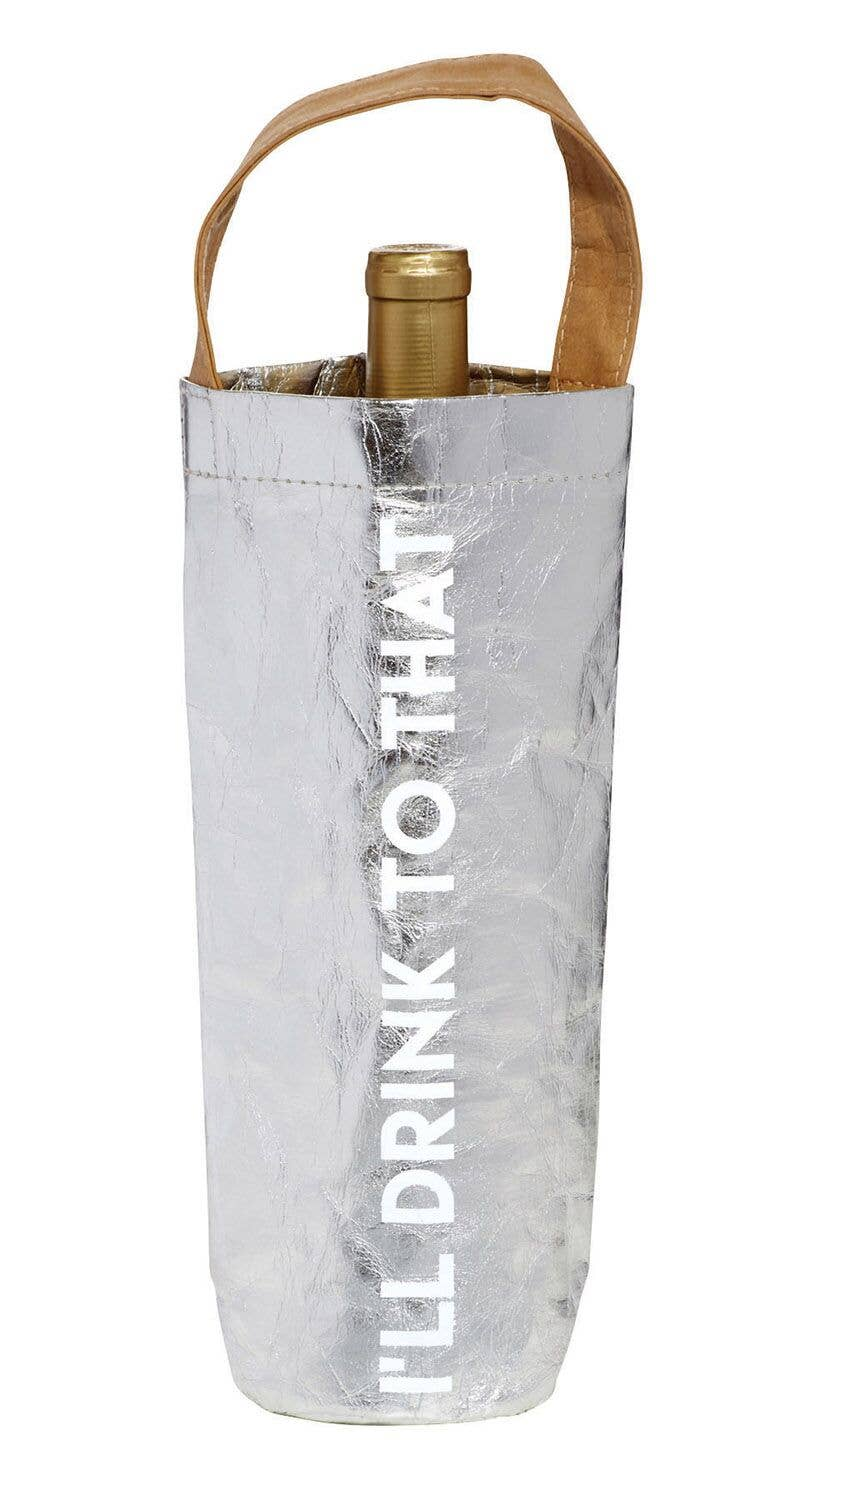 I'll Drink To That - Wine Bag